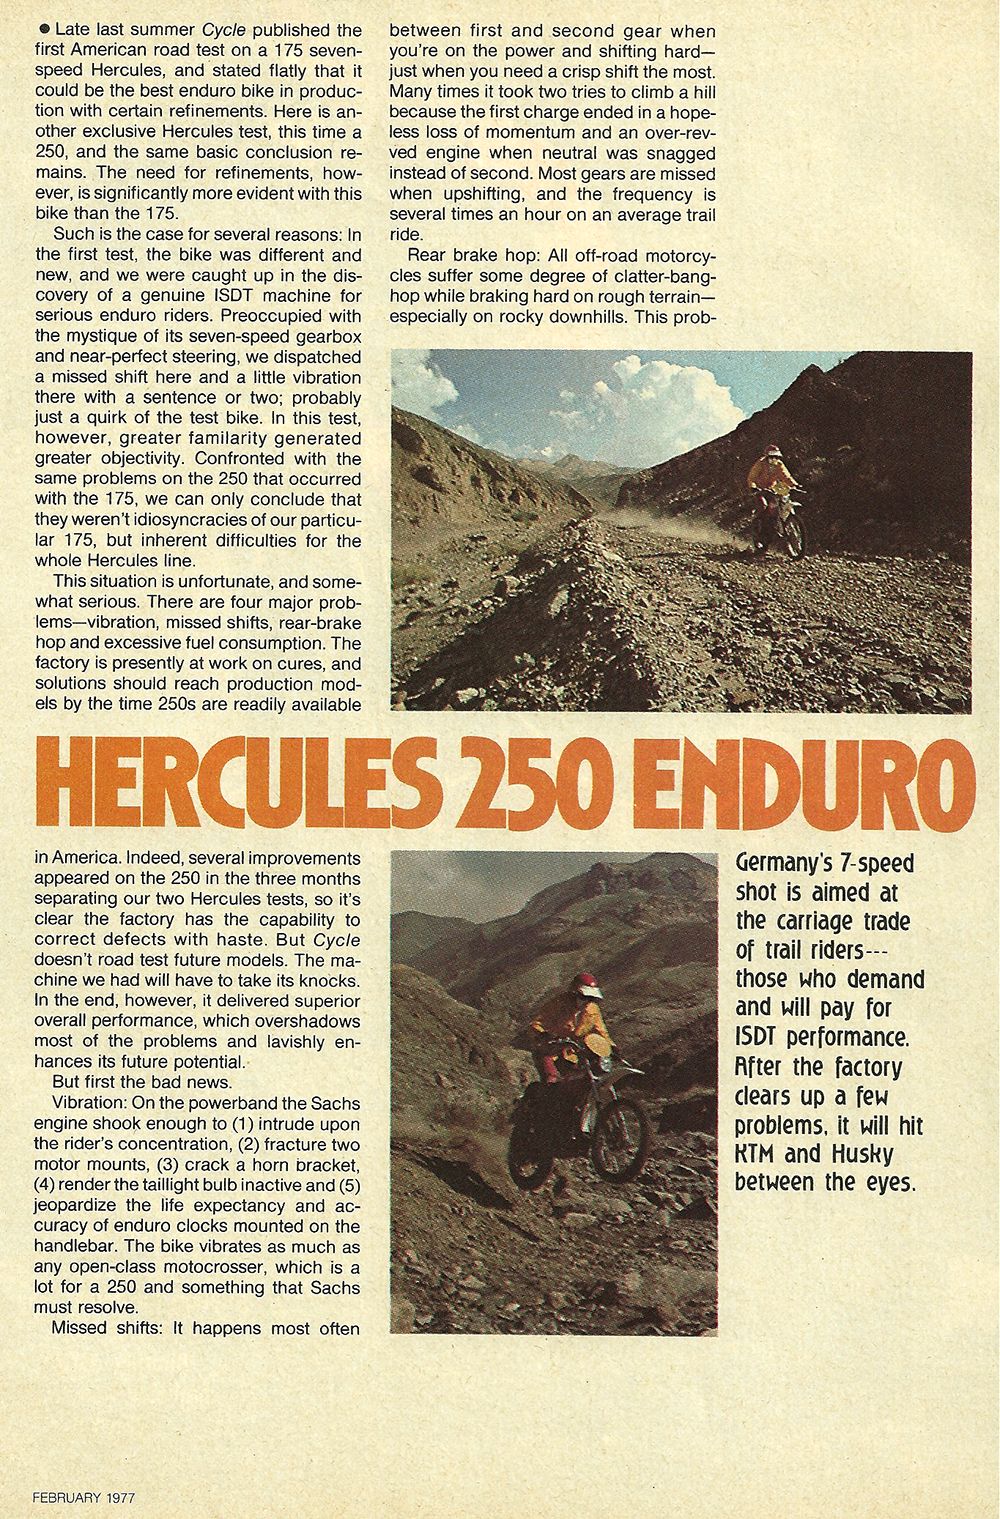 1977 Hercules 250 Enduro road test 2.jpg